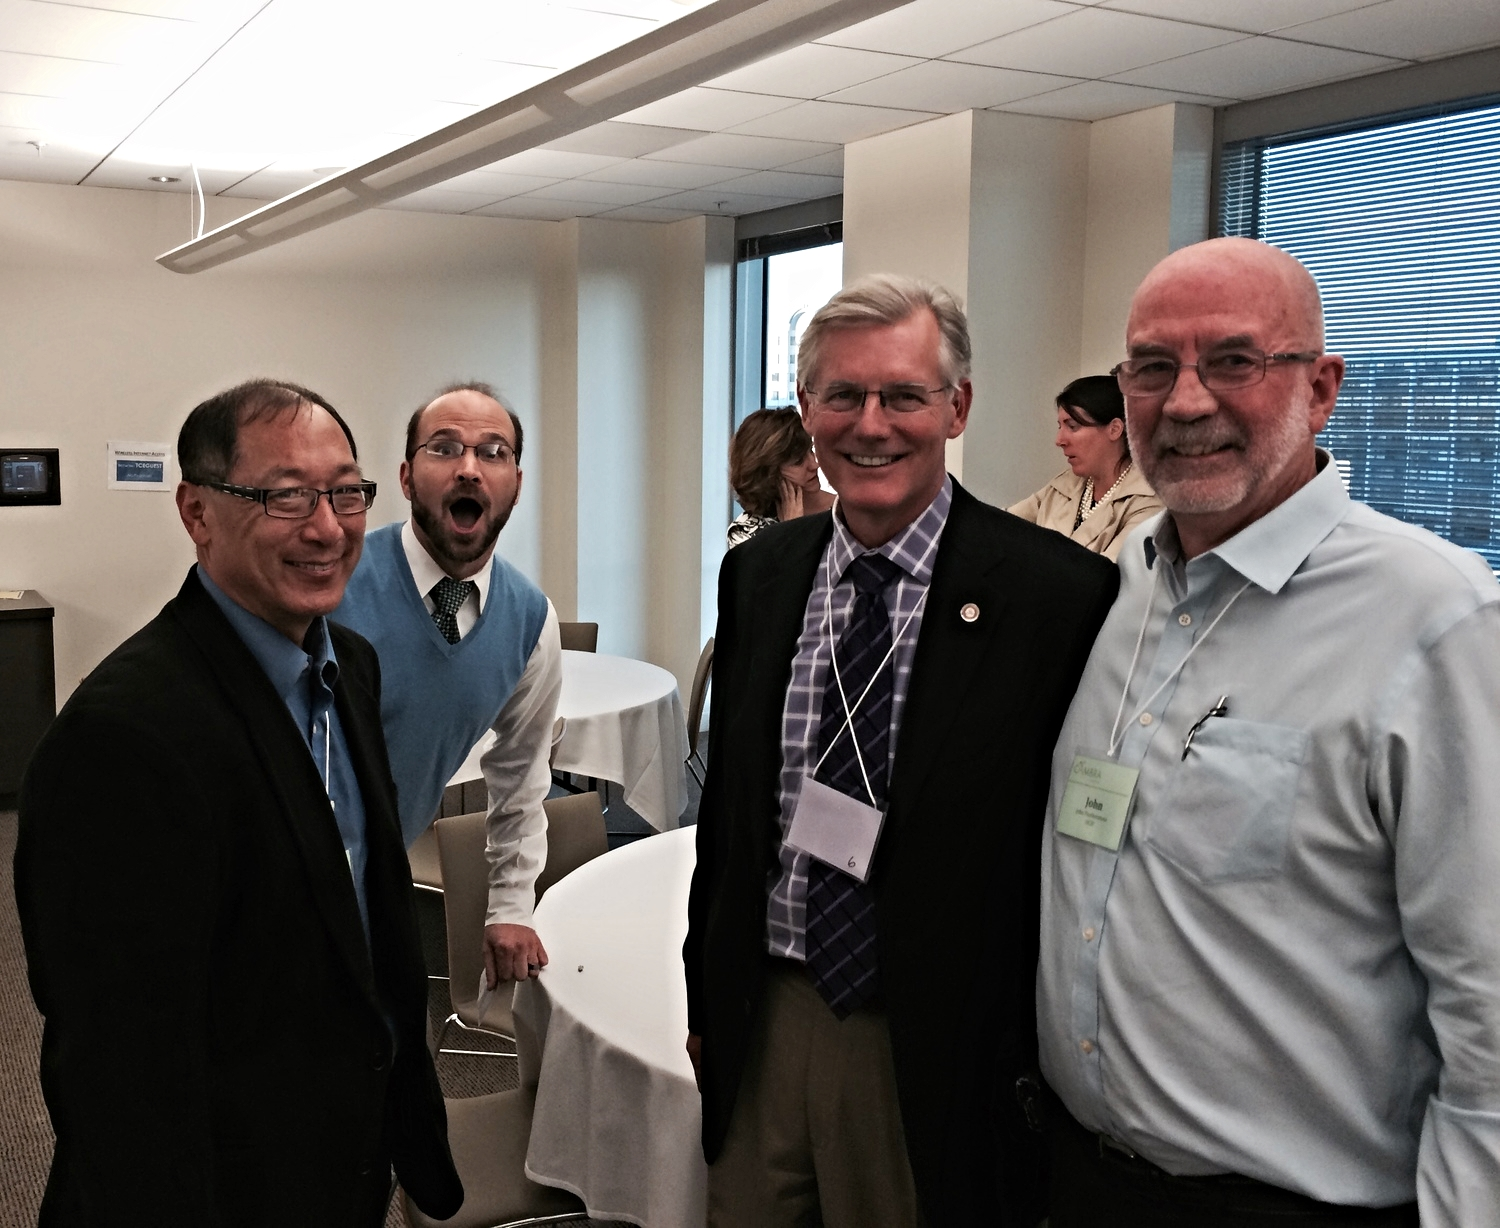 Dr. Young, Dr. Novy, Dr. Kutsch, and Dr. Featherstone